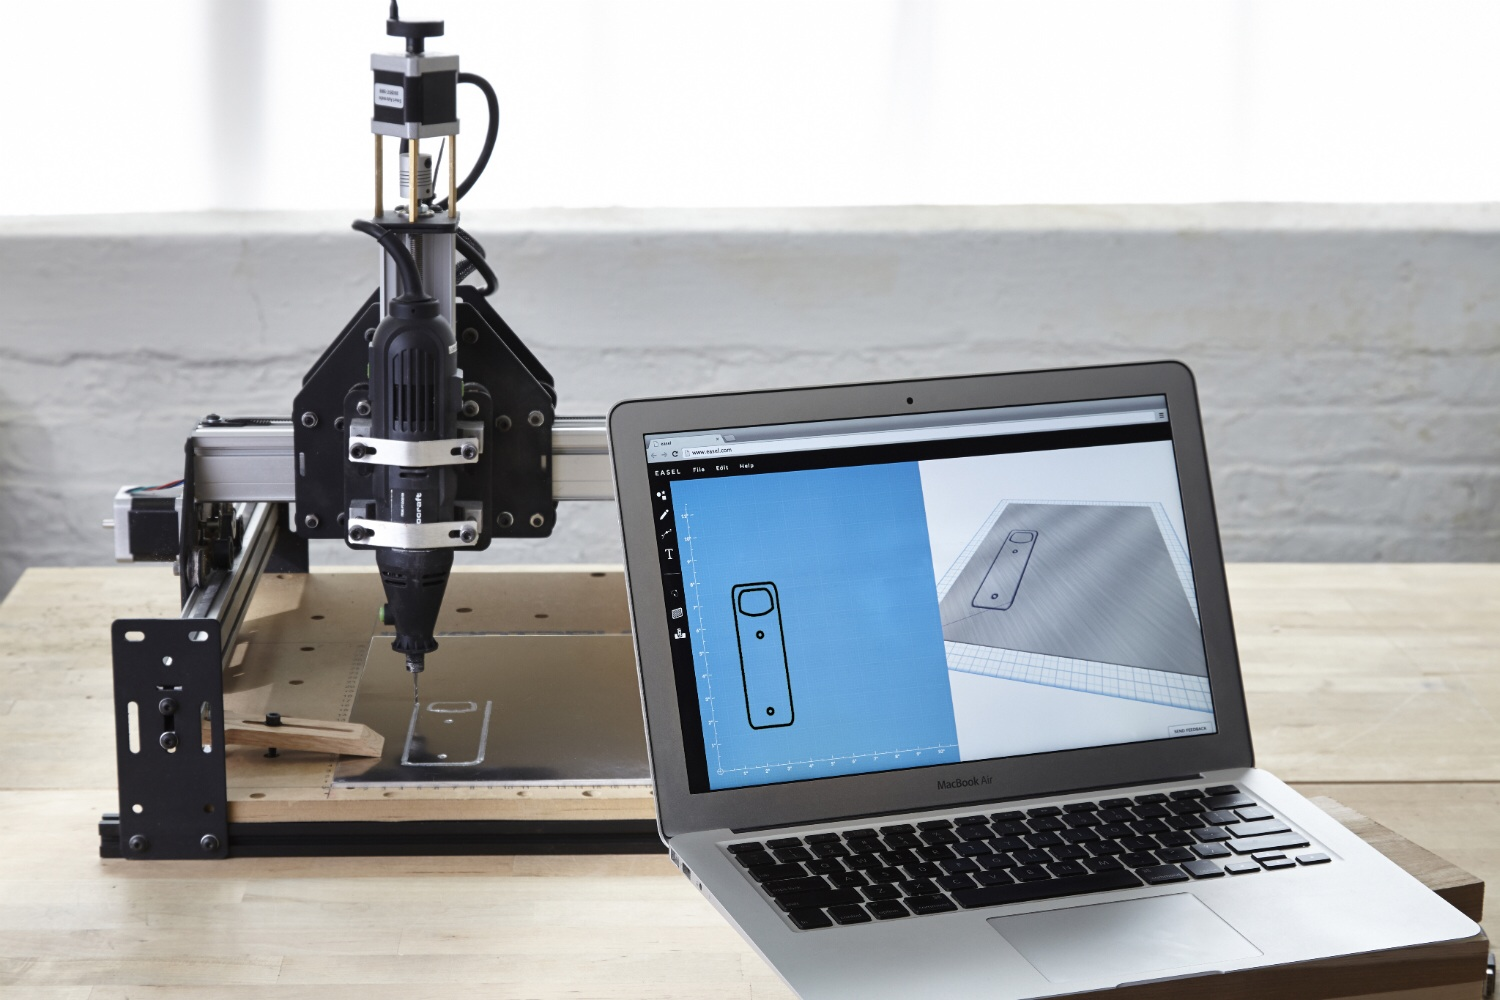 Inventable's Easel design service and a Shapeoko desktop CNC milling machine